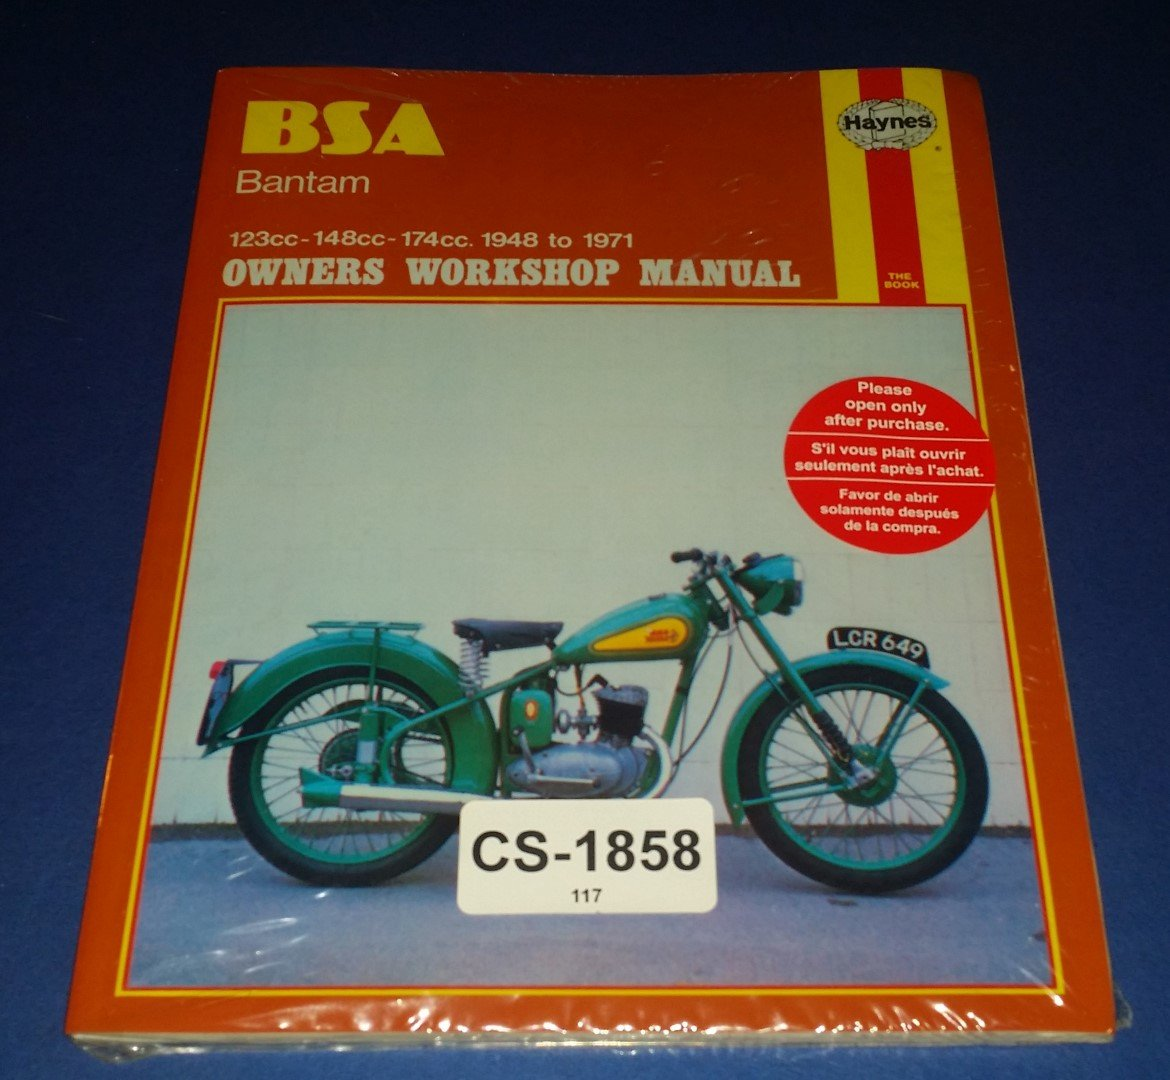 BSA Bantam Owners Workshop Manual ...